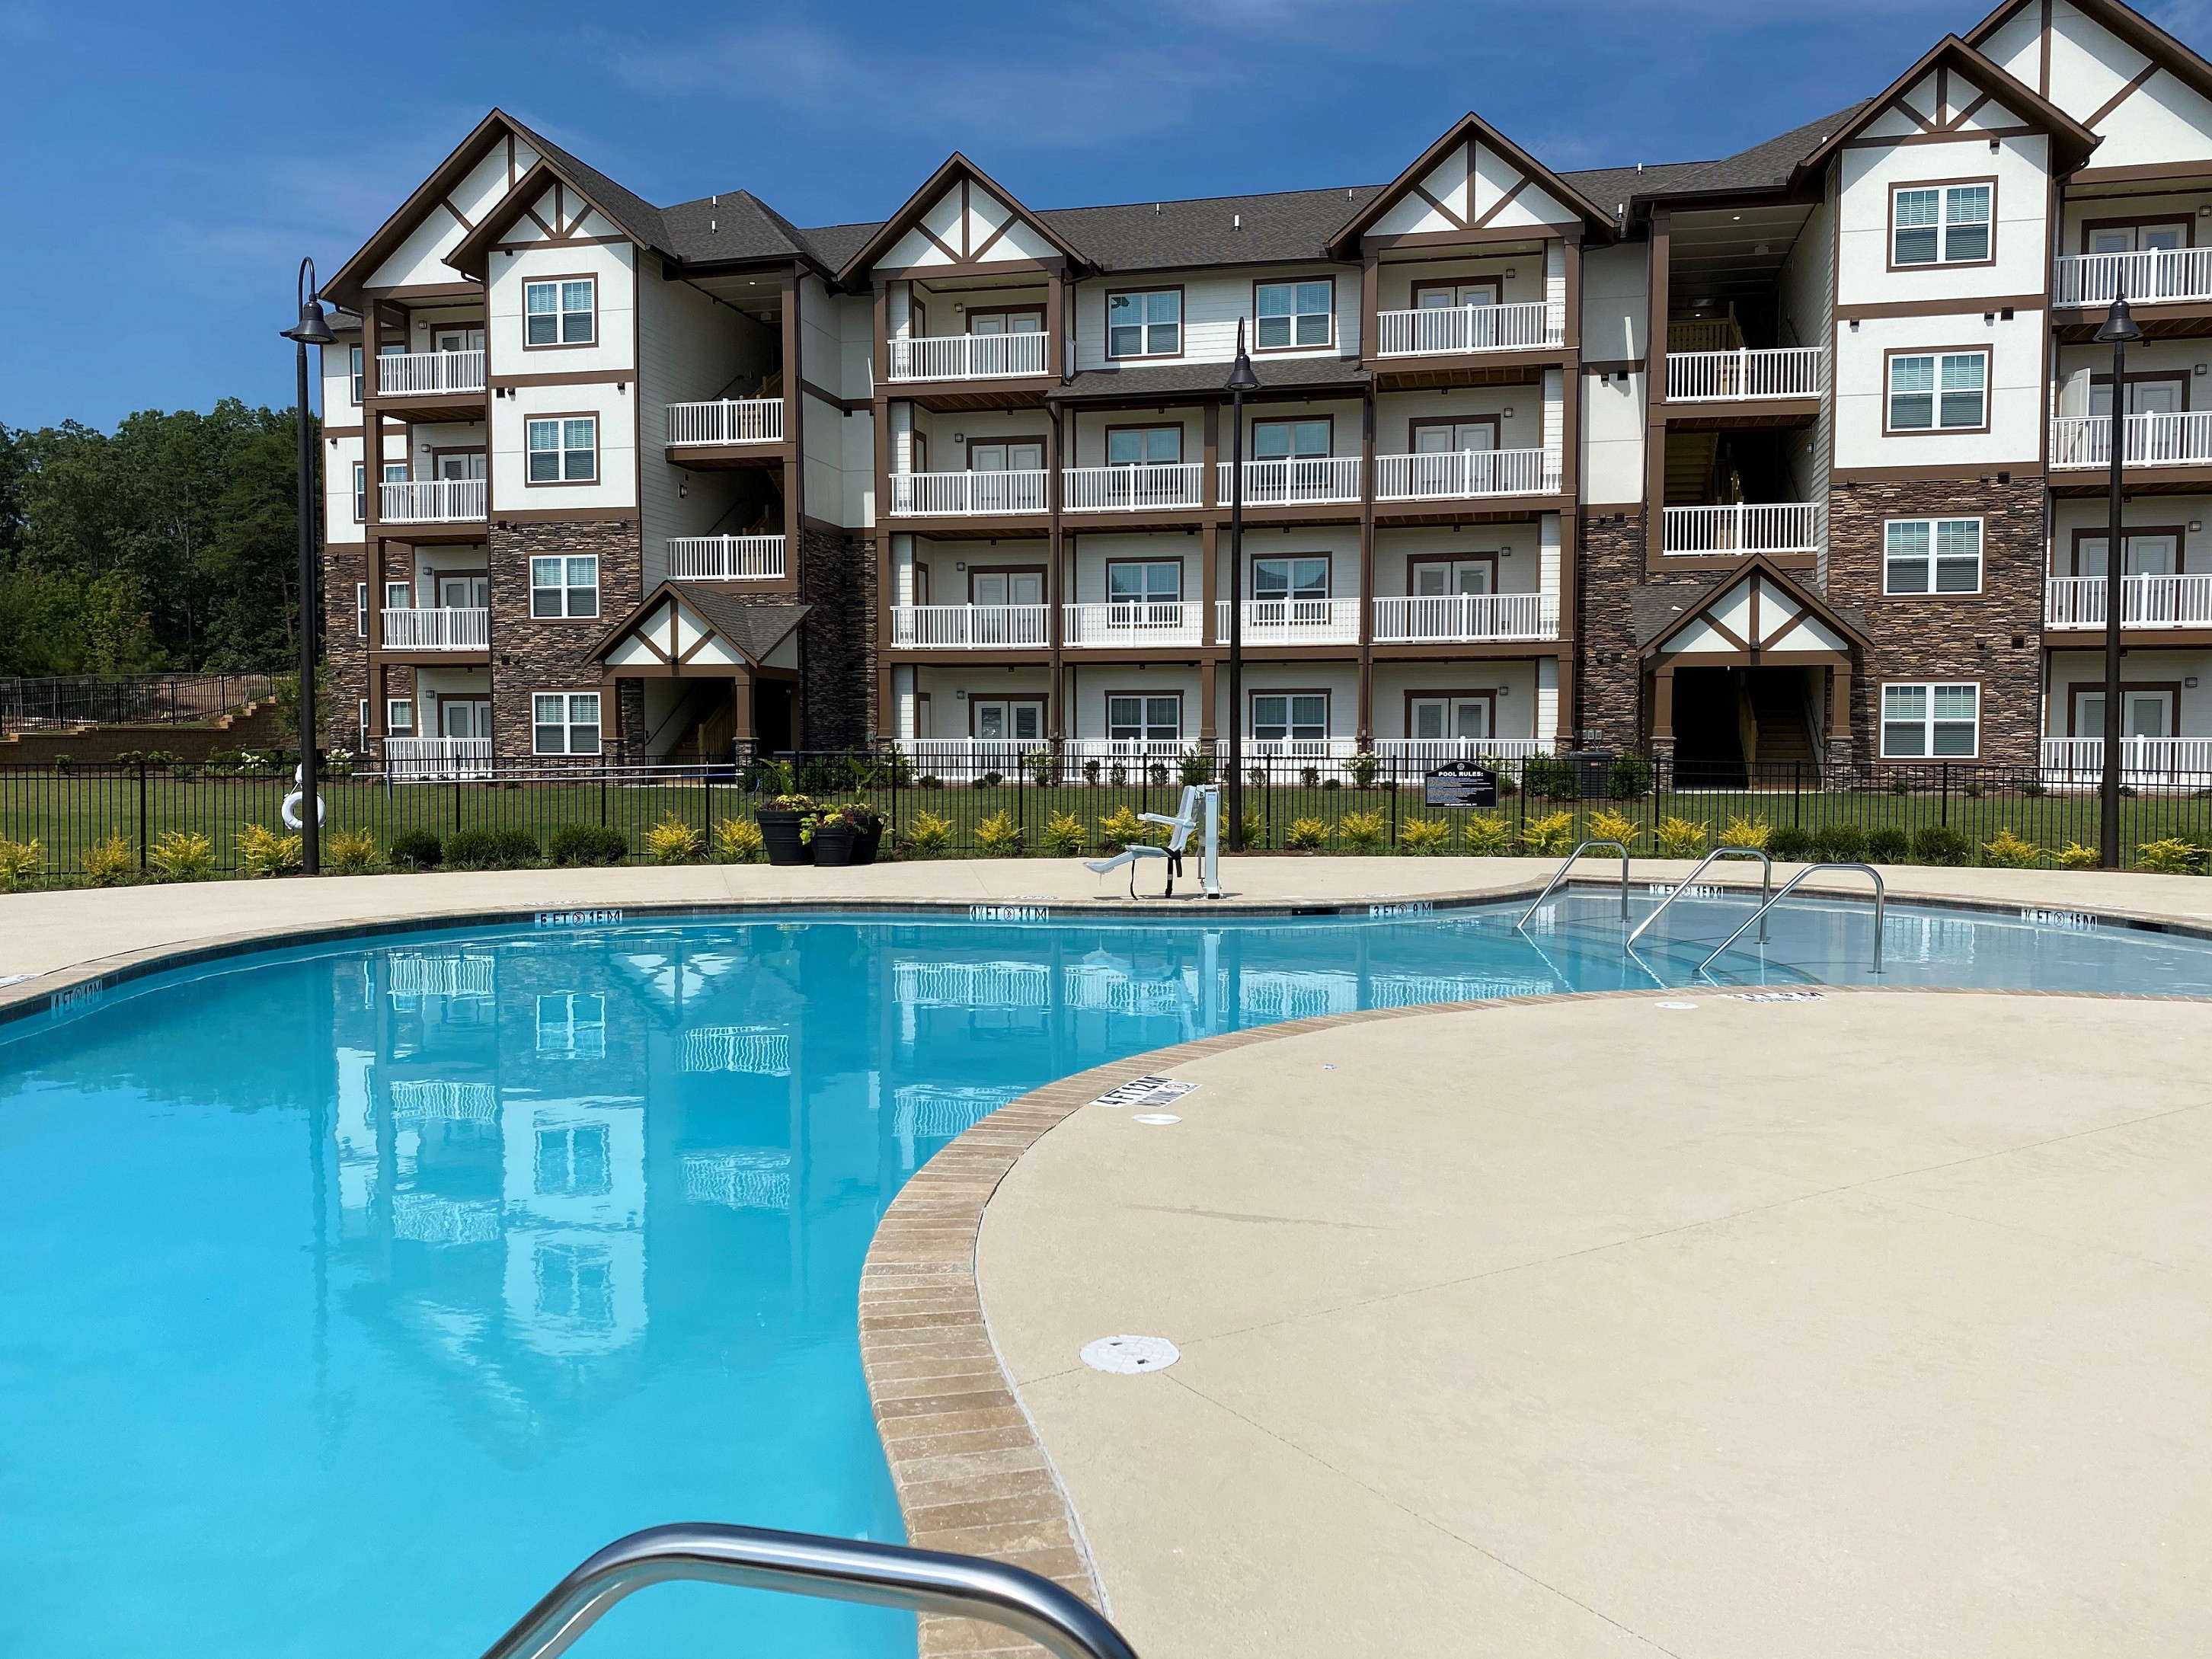 Apartments Near Kennesaw State Legends at Laurel Canyon for Kennesaw State University Students in Kennesaw, GA